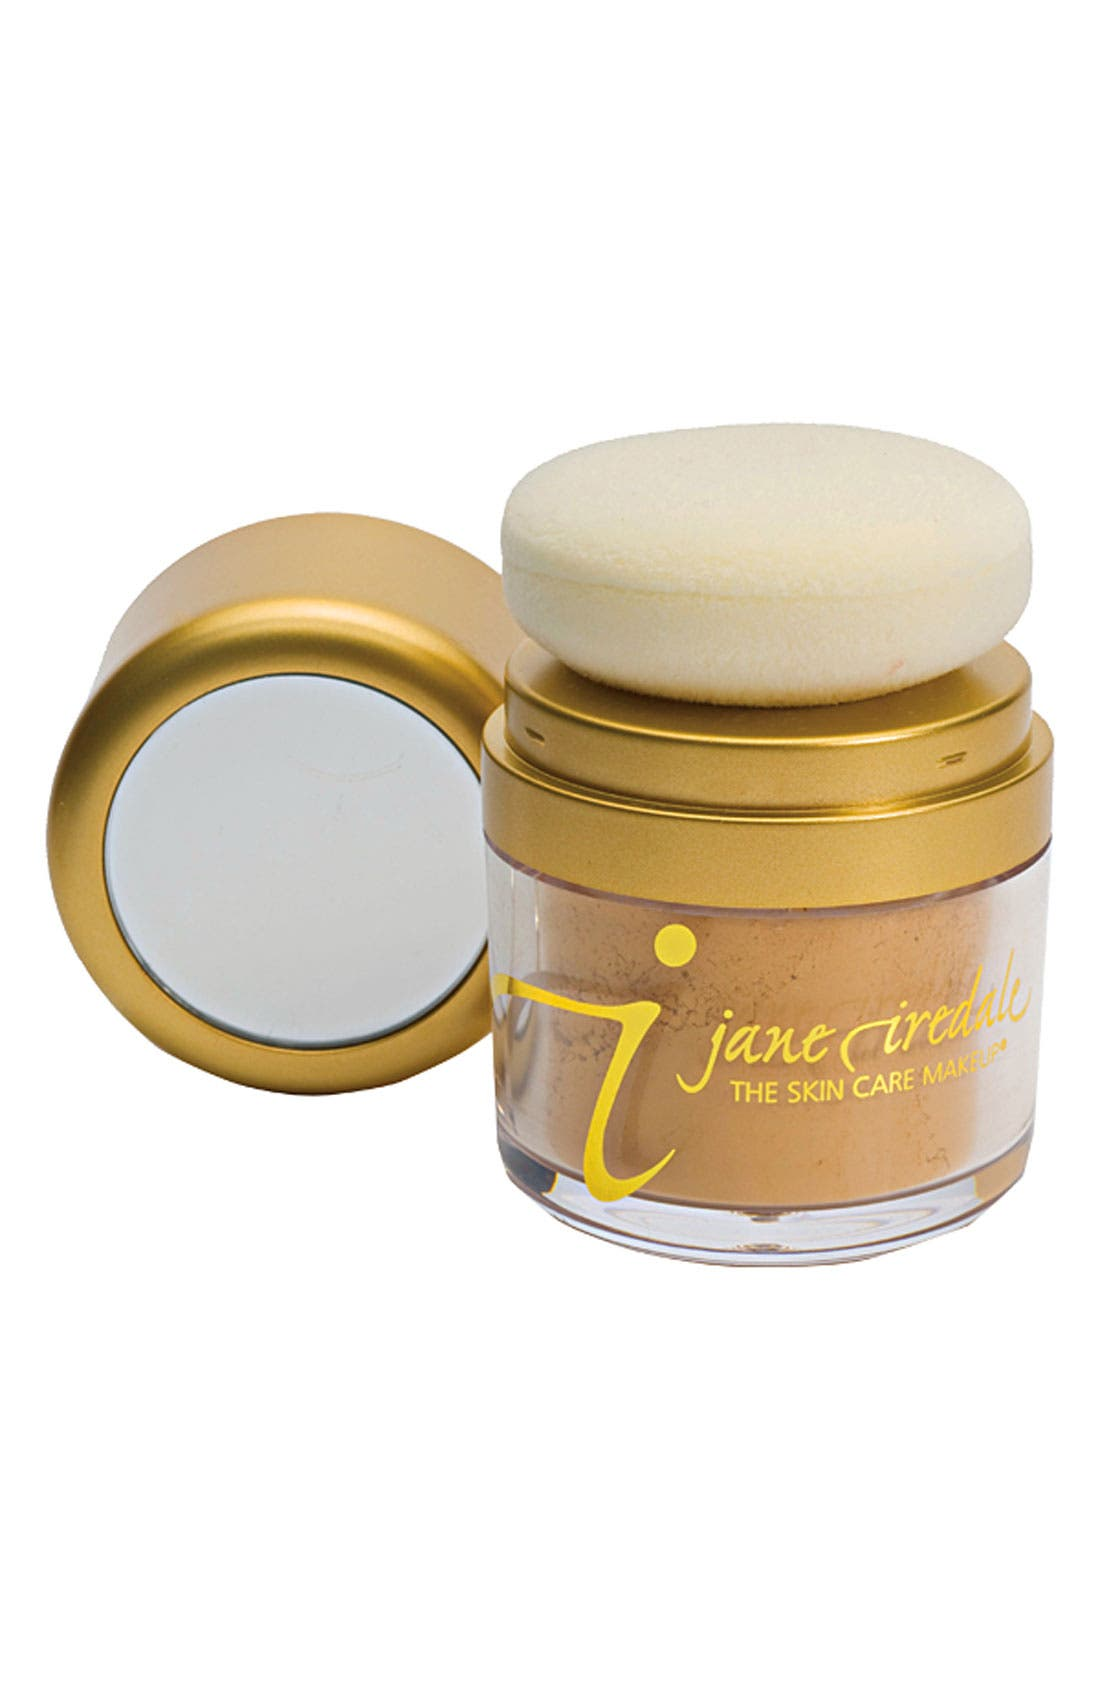 JANE IREDALE Powder Me Dry Sunscreen Broad Spectrum Spf 30 - Tanned